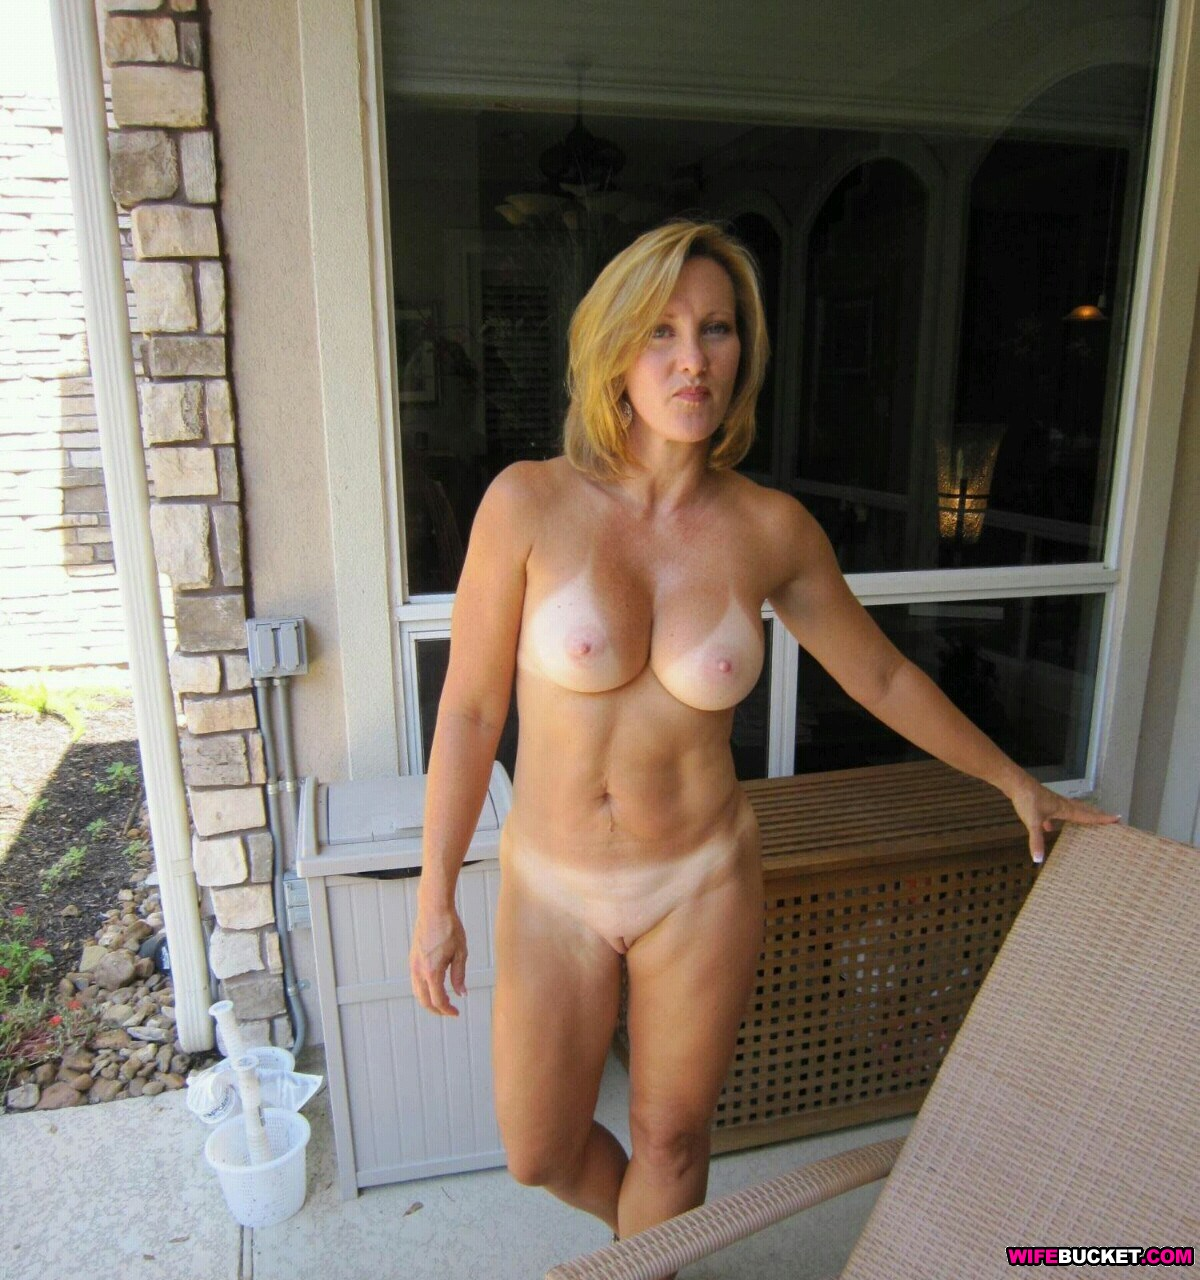 Wife Bucket - Real amateur MILFs, wives, and moms! Swingers too: www.wifebucket.com/fhg/photo/p10/p10-278-free-wifebucket-pics/index...